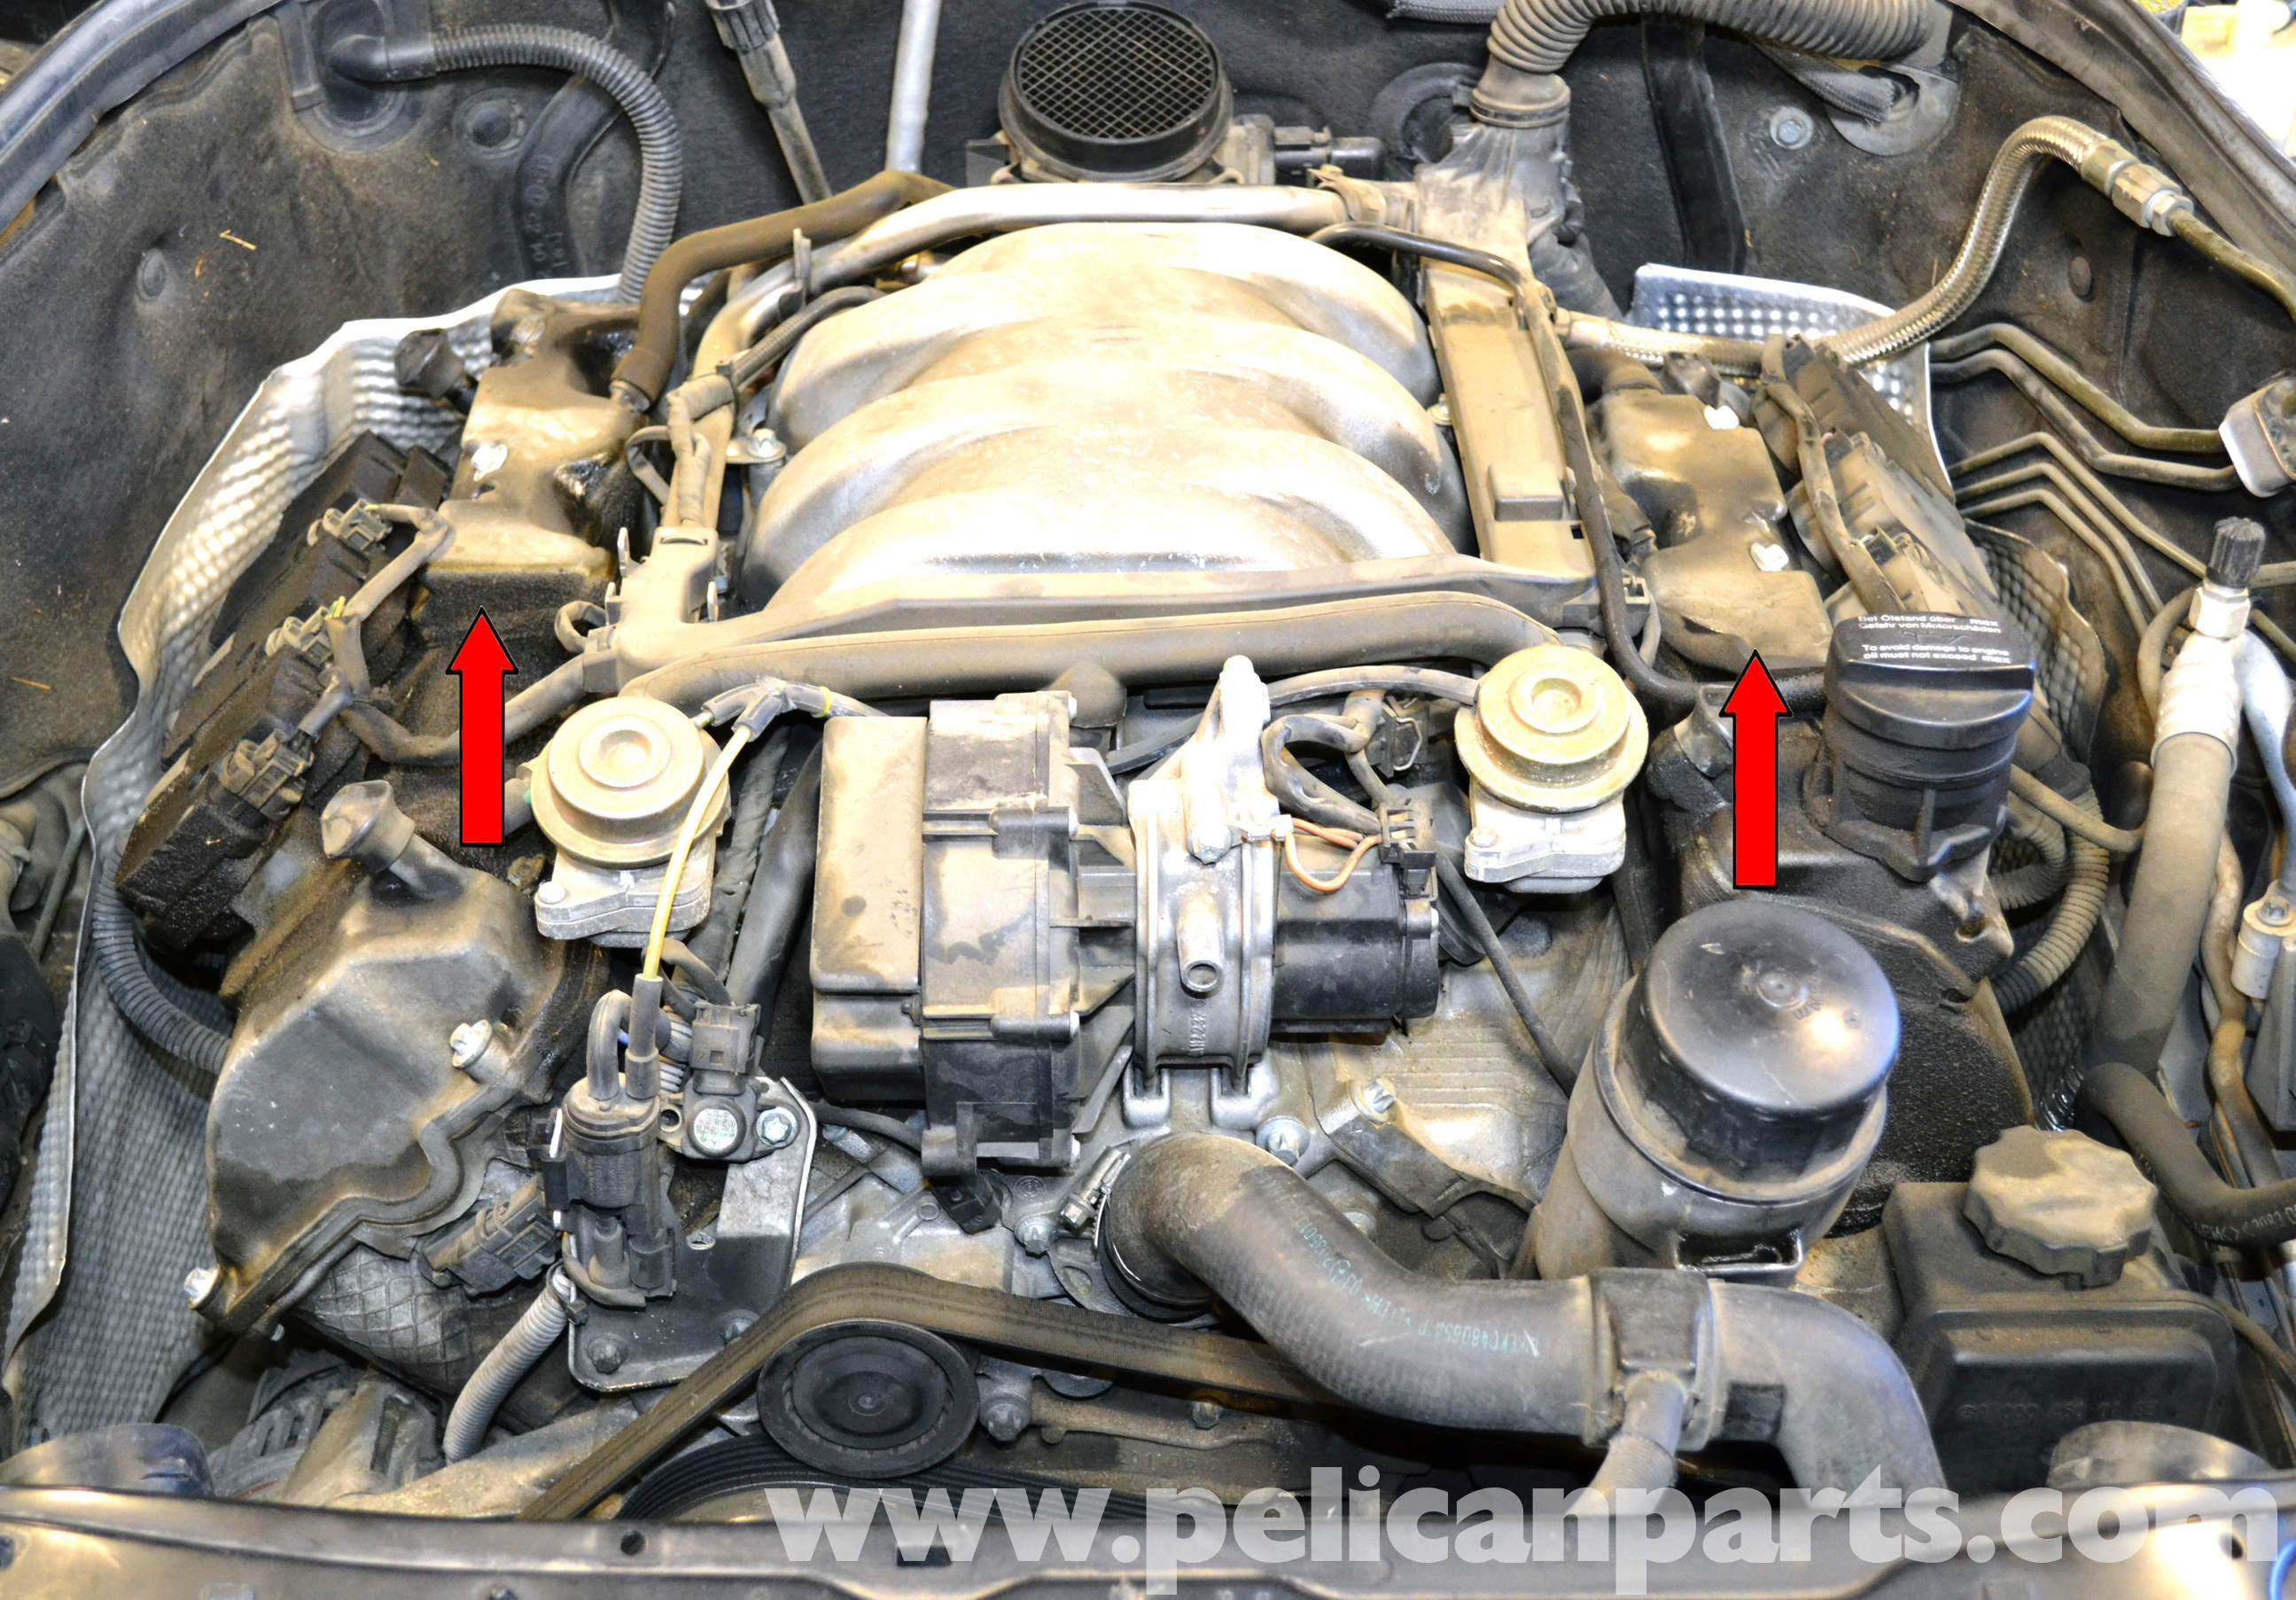 Mercedes S430 Engine Diagram Mercedes Benz W203 Valve Cover Breather Gaskets Replacement 2001 Of Mercedes S430 Engine Diagram